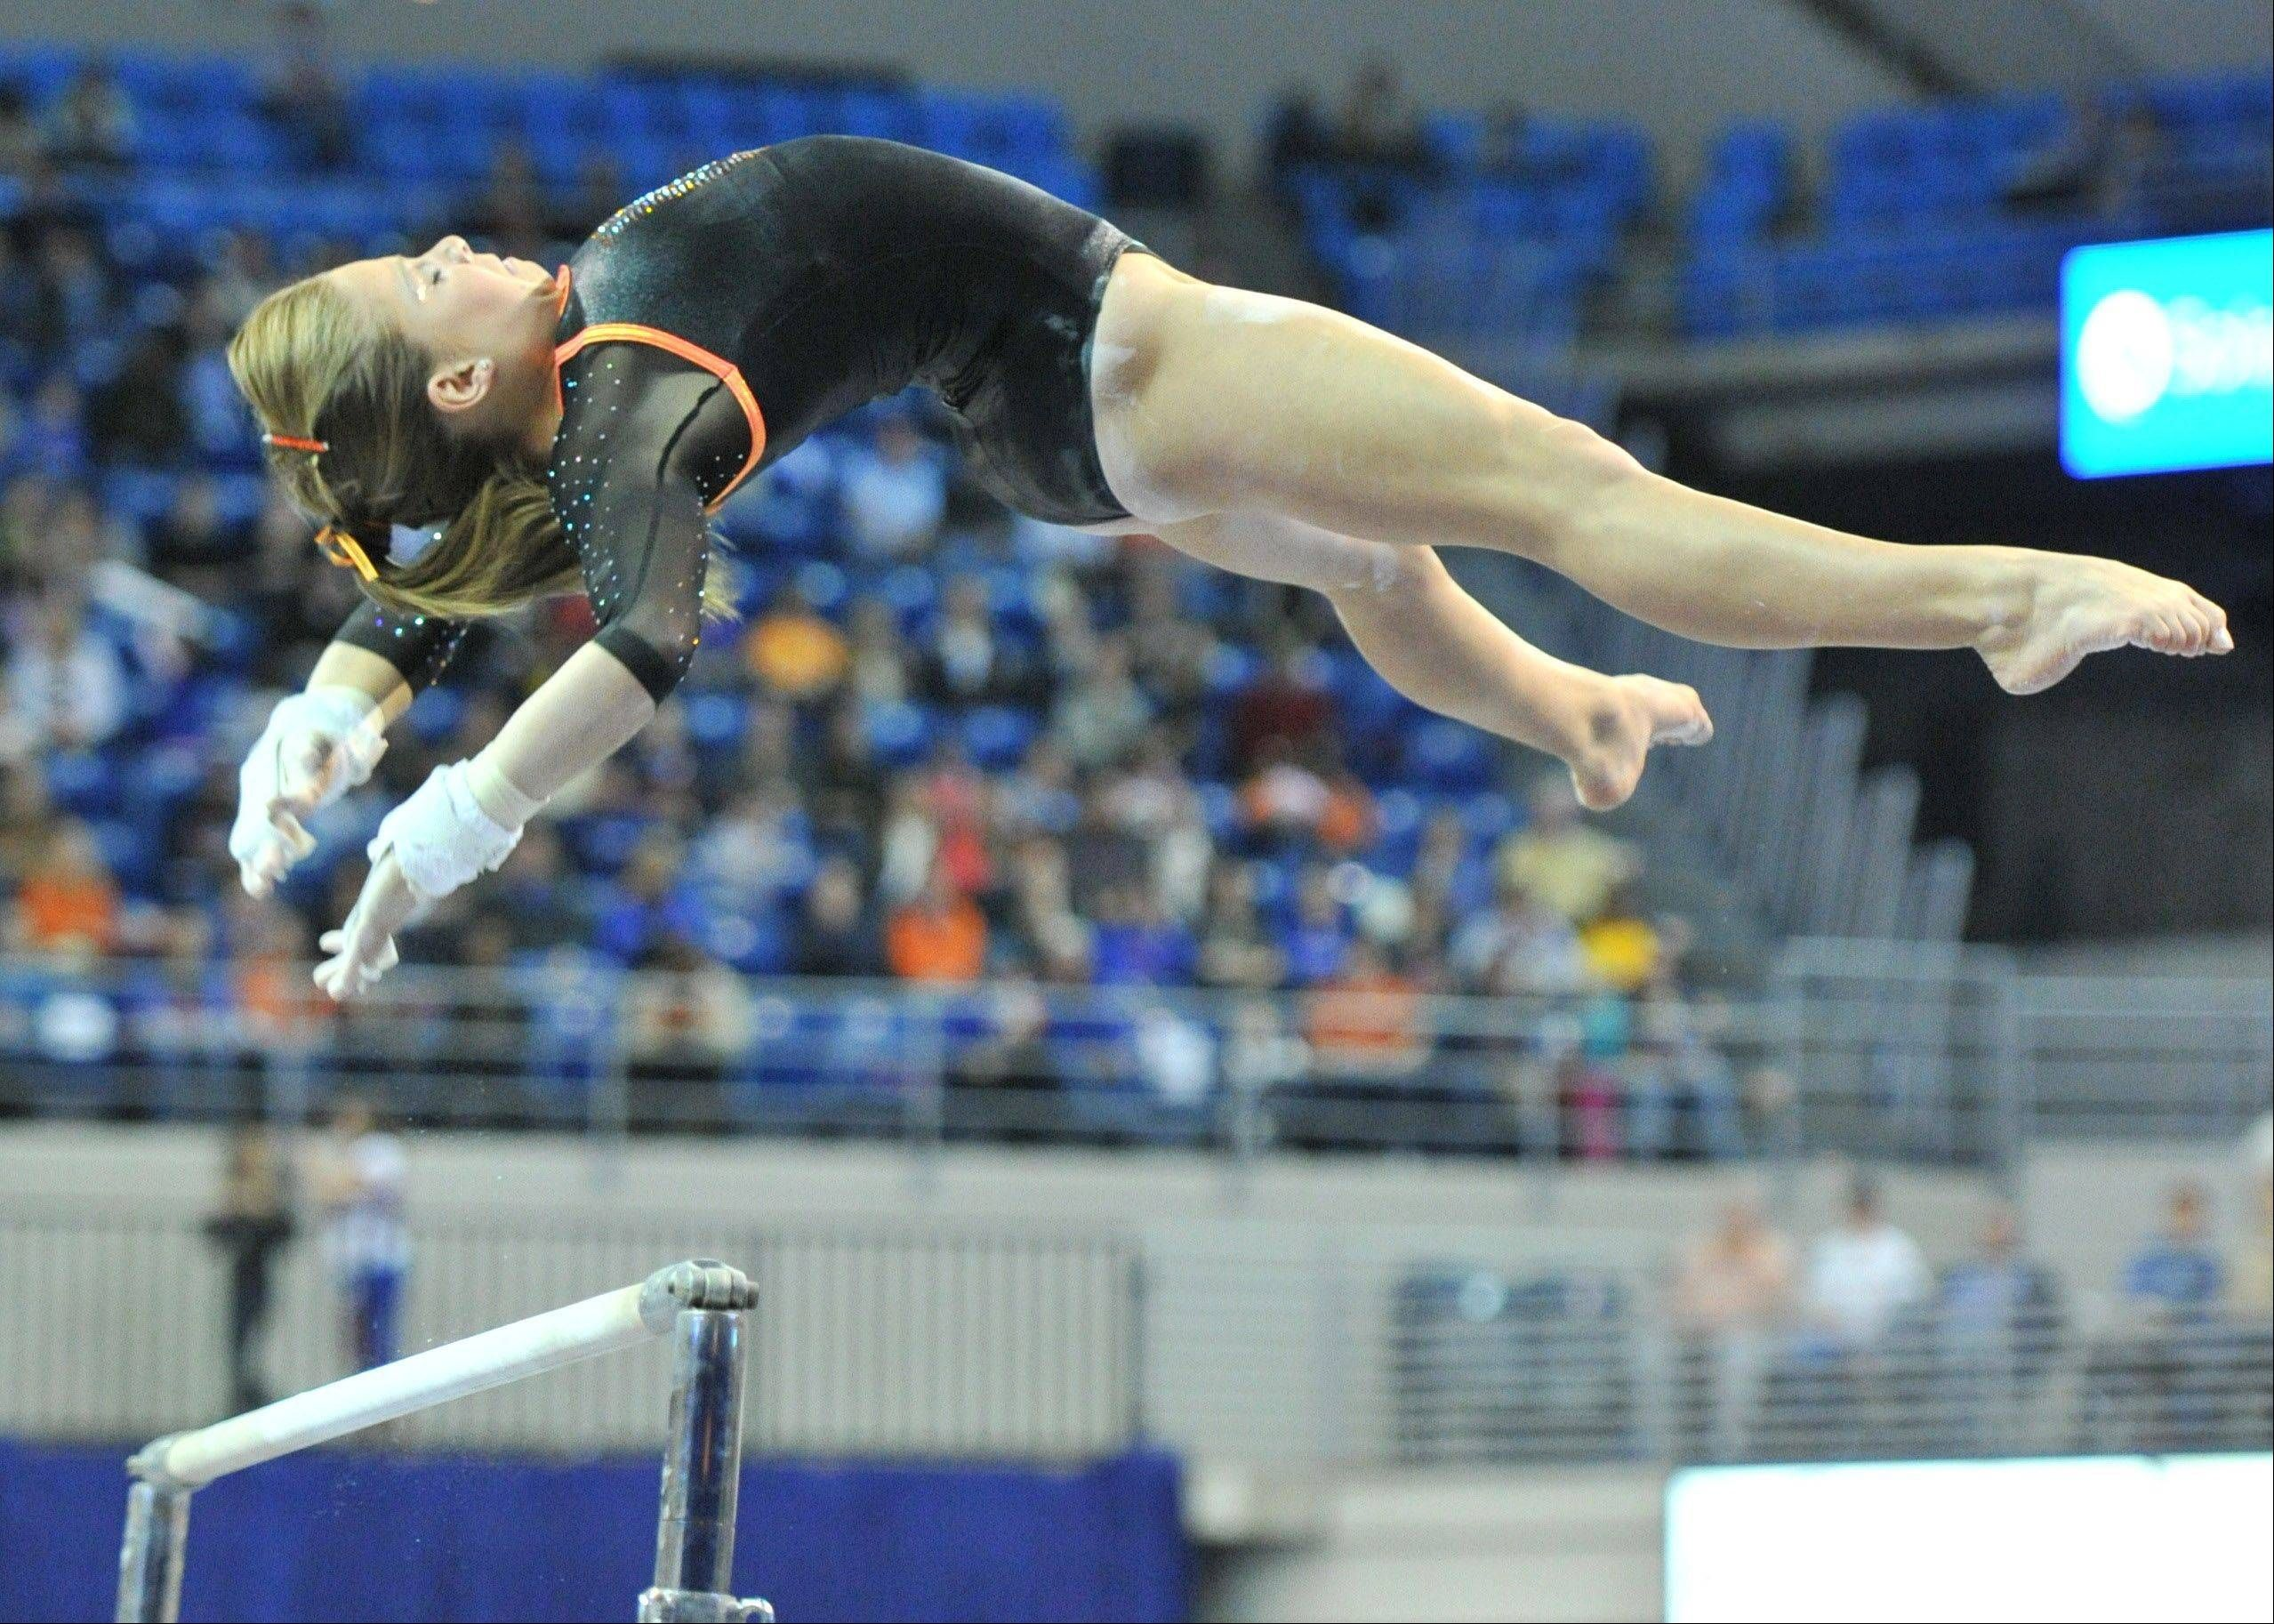 Naperville Sisters Among Gymnastics Elite With Images Olympic Gymnastics Sport Gymnastics All About Gymnastics